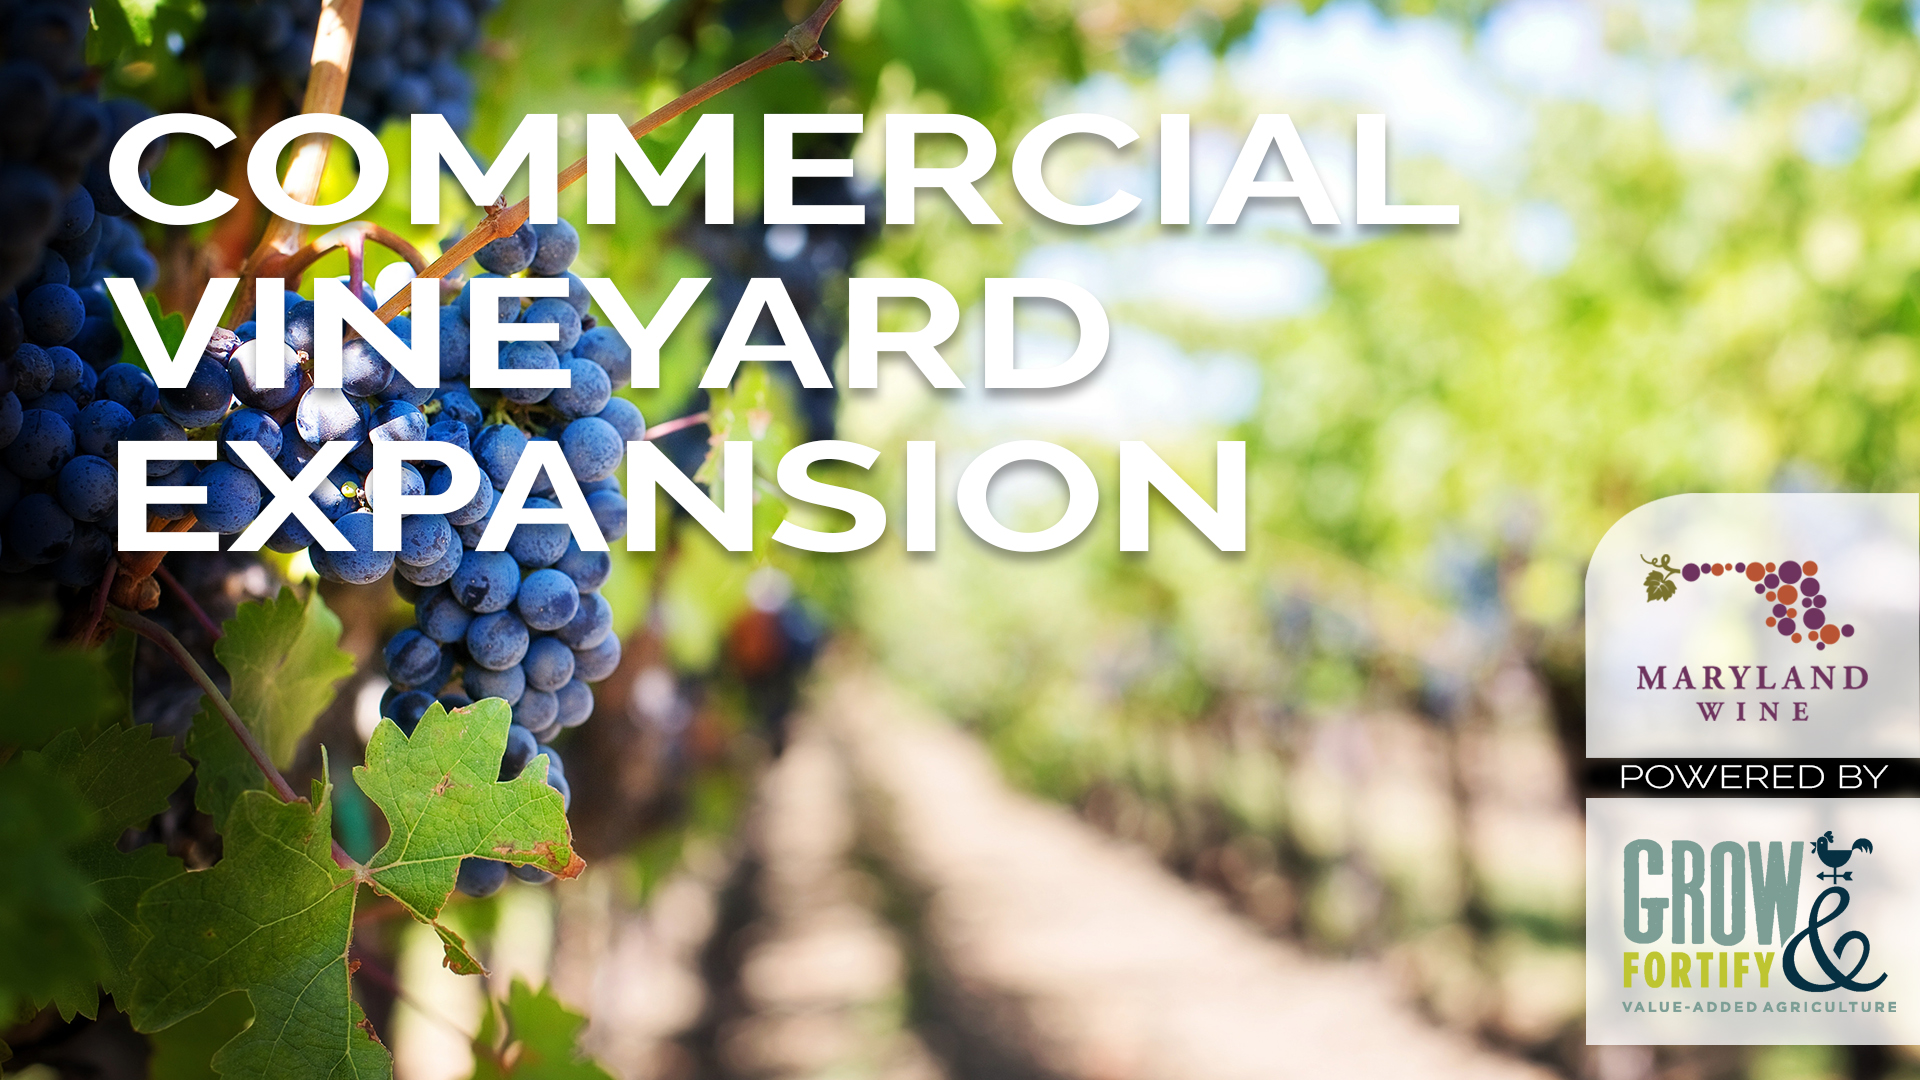 Commercial Vineyard Expansion Course Launches